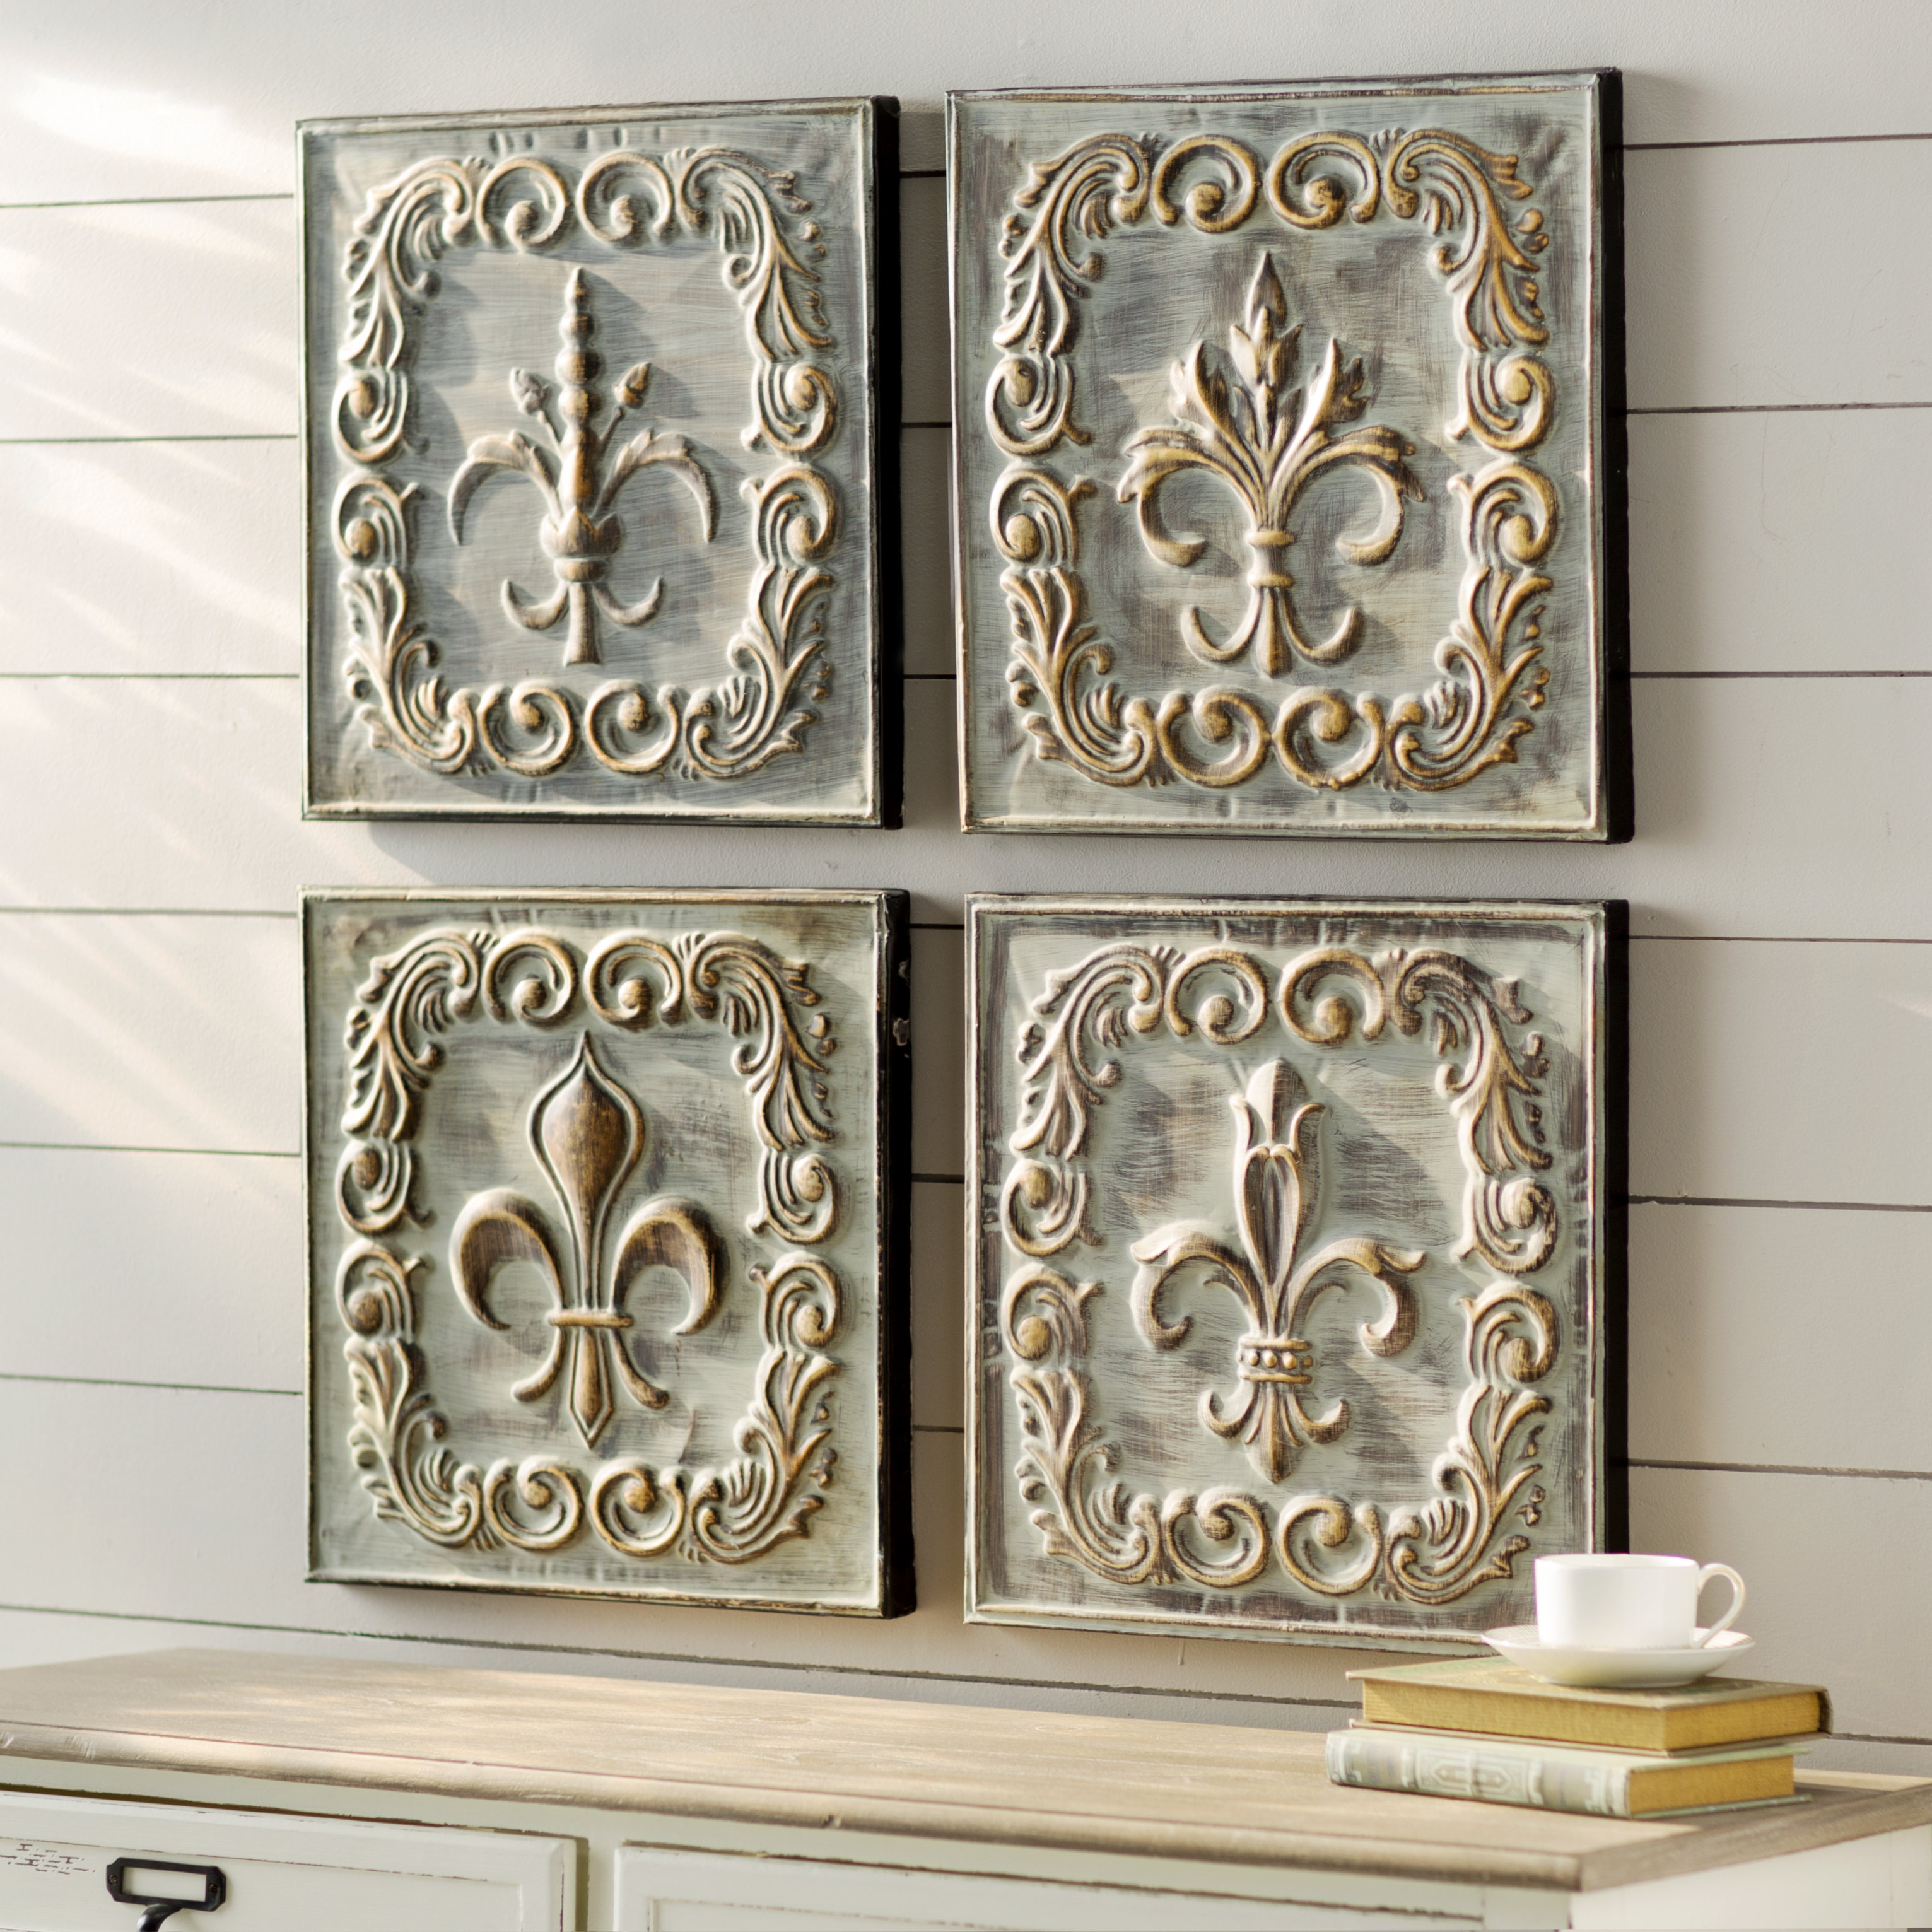 Farmhouse & Rustic Lark Manor Wall Decor | Birch Lane in 1 Piece Ortie Panel Wall Decor (Image 12 of 30)